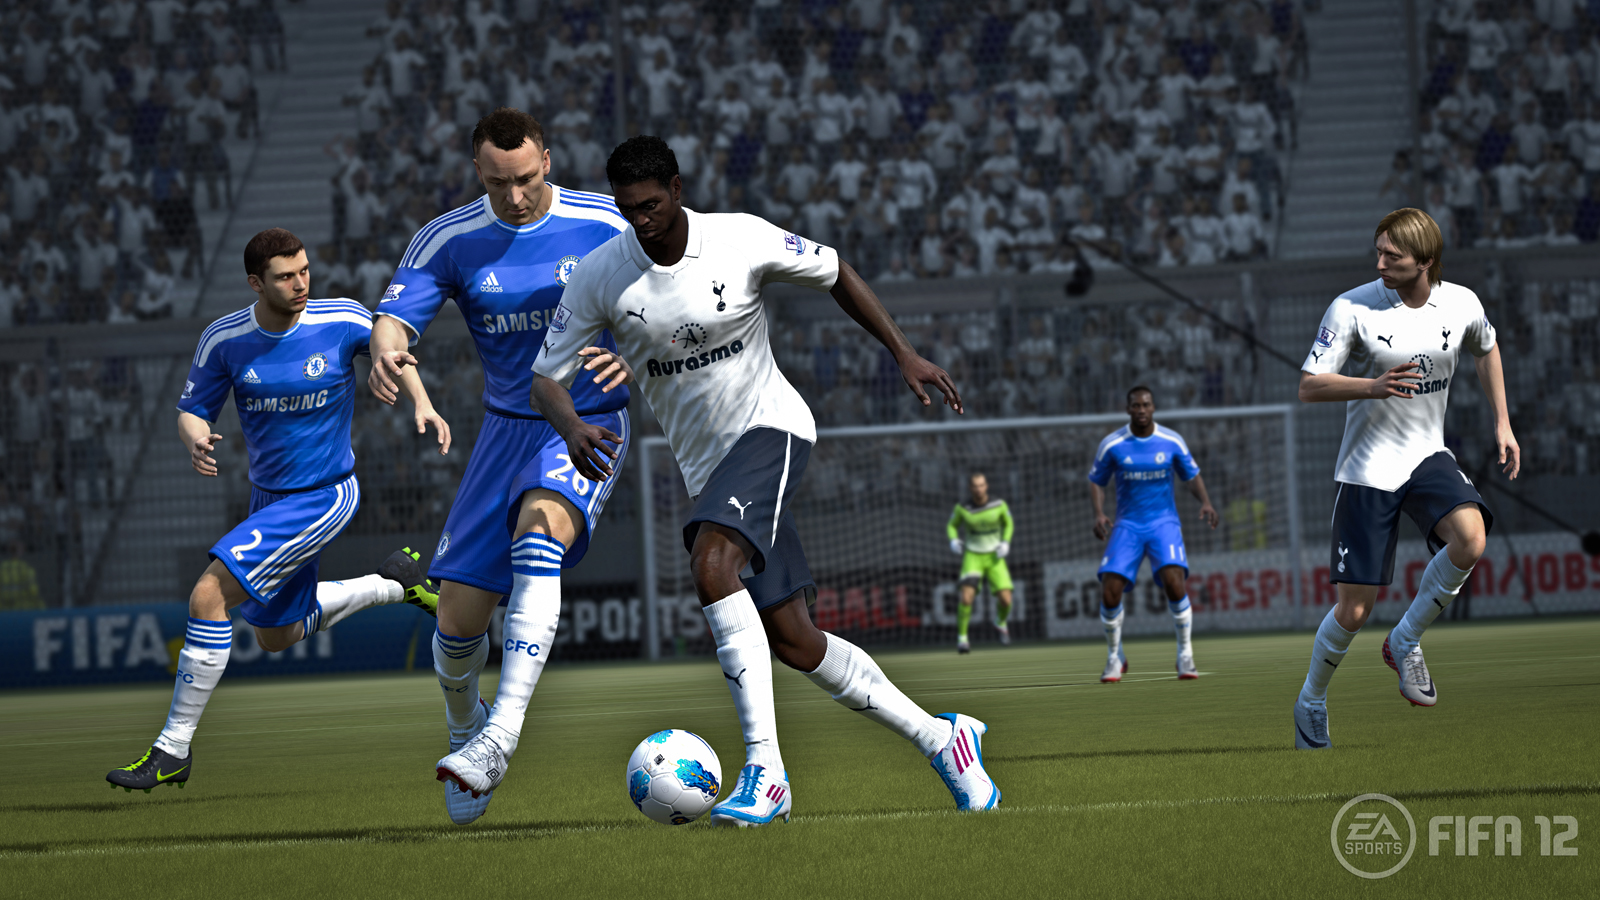 FIFA 12 - Highly Compressed 500 MB - Full PC Game Free ...